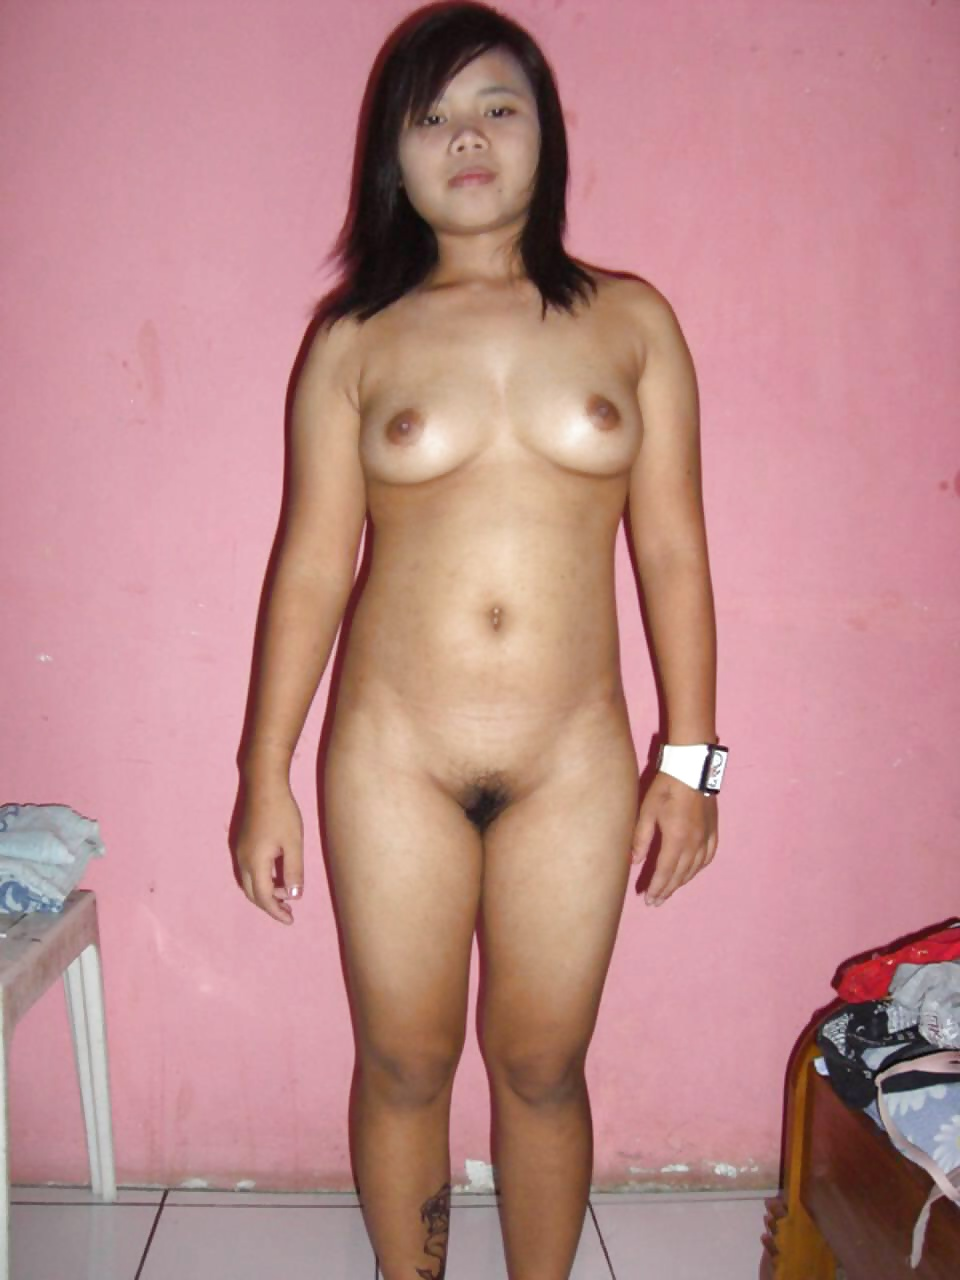 streaming-young-indonesian-amateur-model-naked-vannesa-delrio